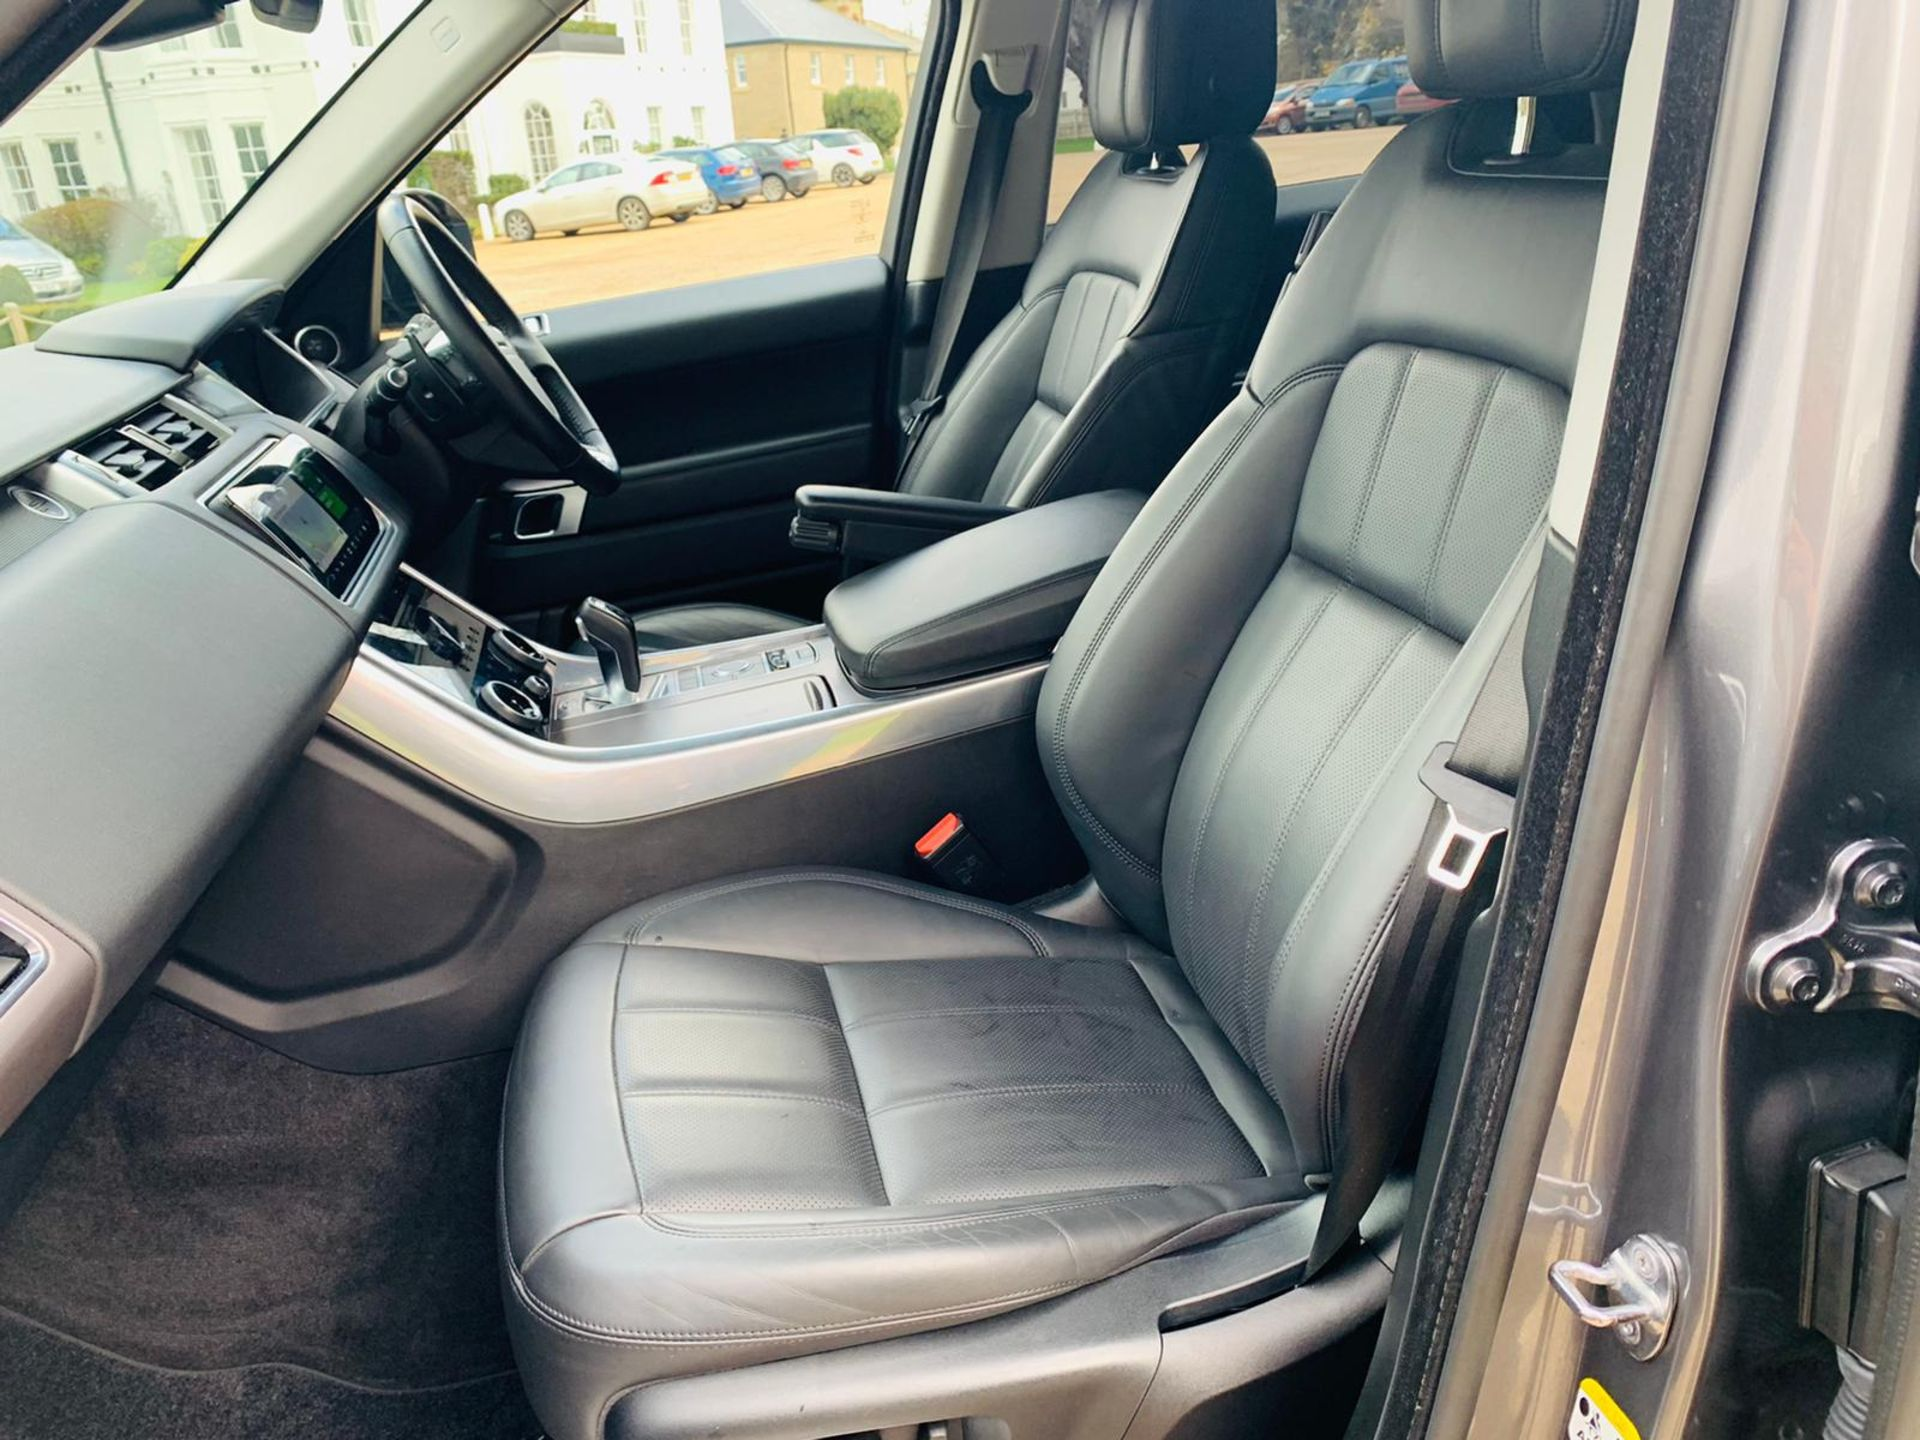 (RESERVE MET) Range Rover Sport 3.0 SDV6 HSE Auto - 2019 - 1 Keeper From New - Virtual Cockpit - - Image 13 of 42